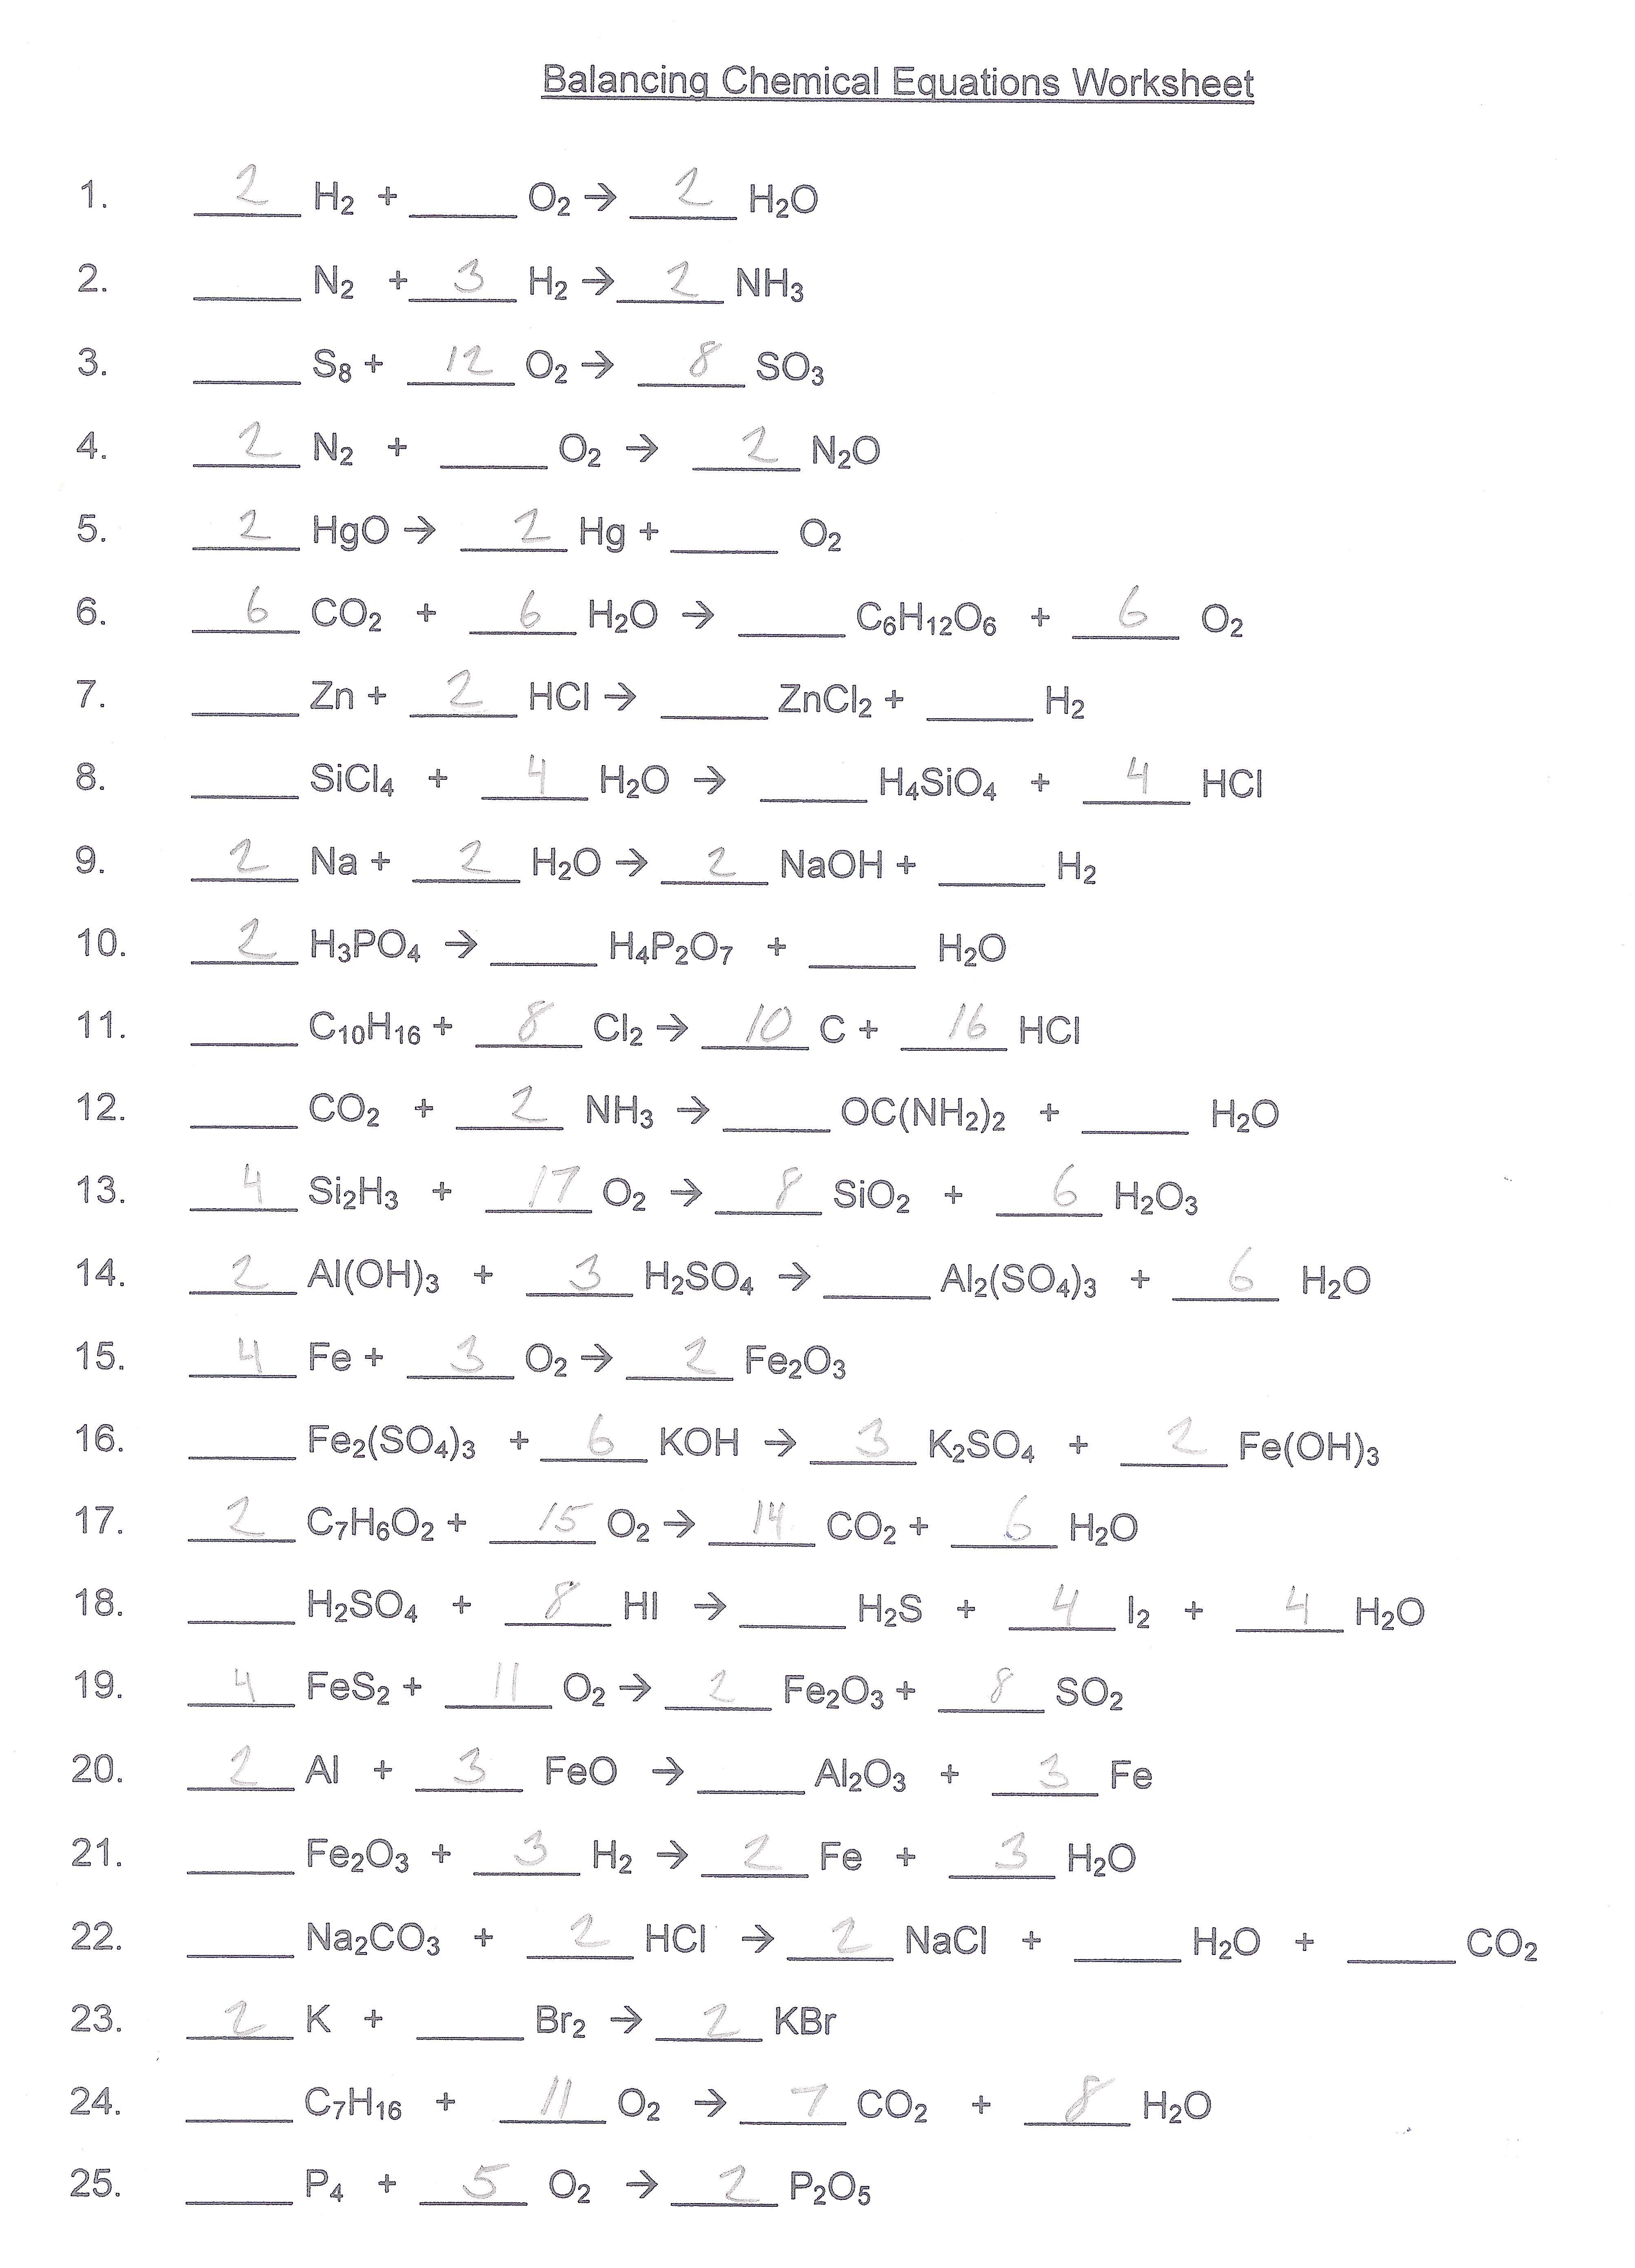 Balancing Chemical Equations Worksheet Answer Key – Chemistry Unit 1 Worksheet 3